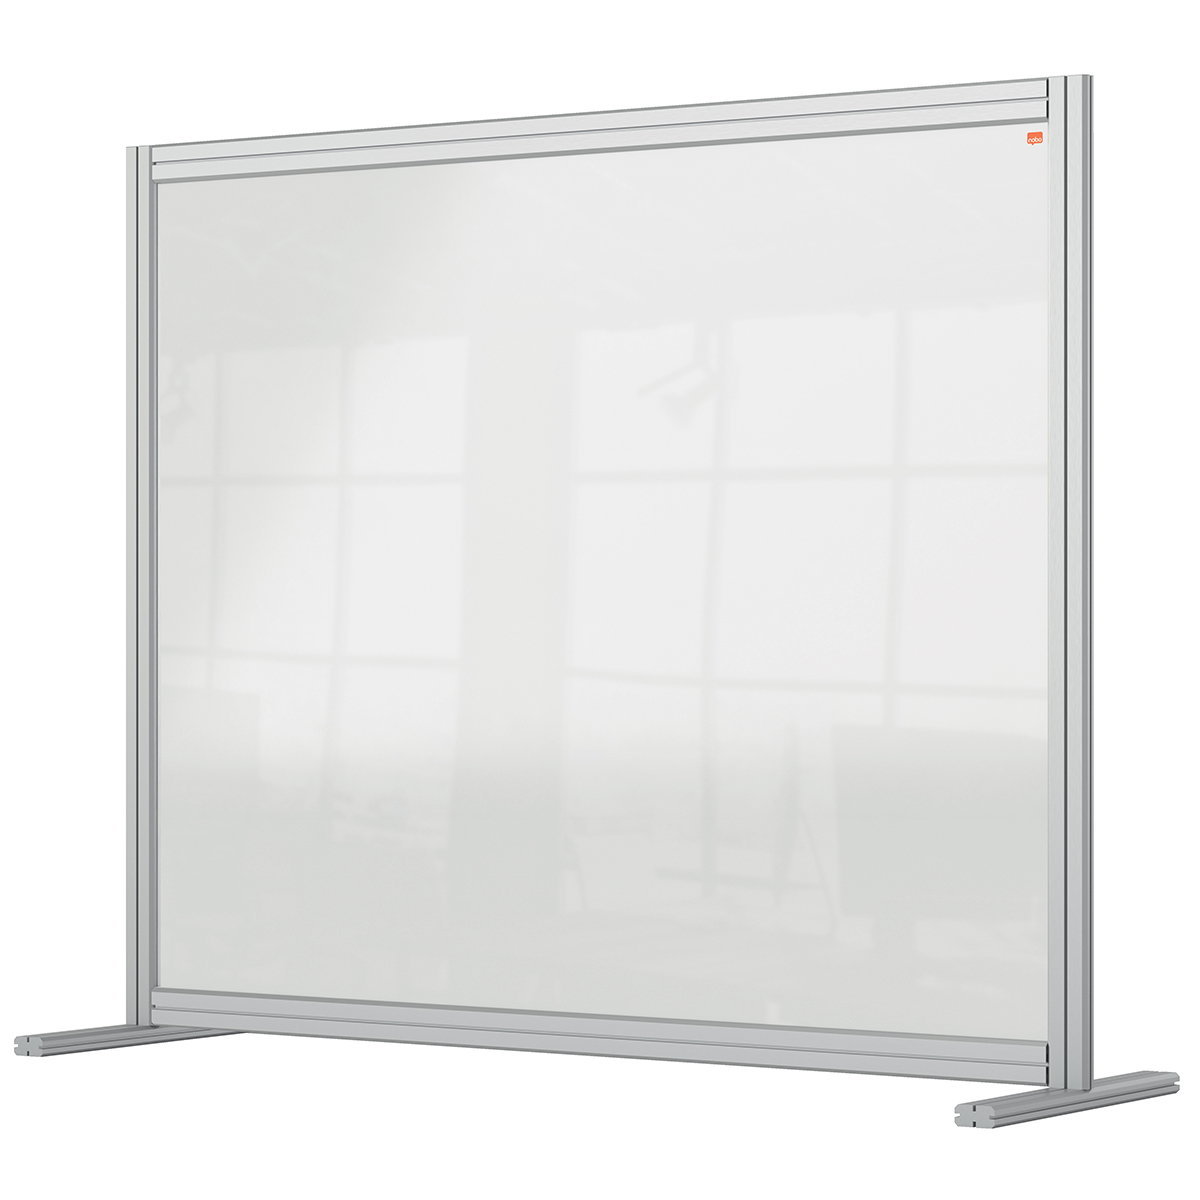 Nobo 1915491 Premium Plus Desk Divider 1200x1000mm Acrylic